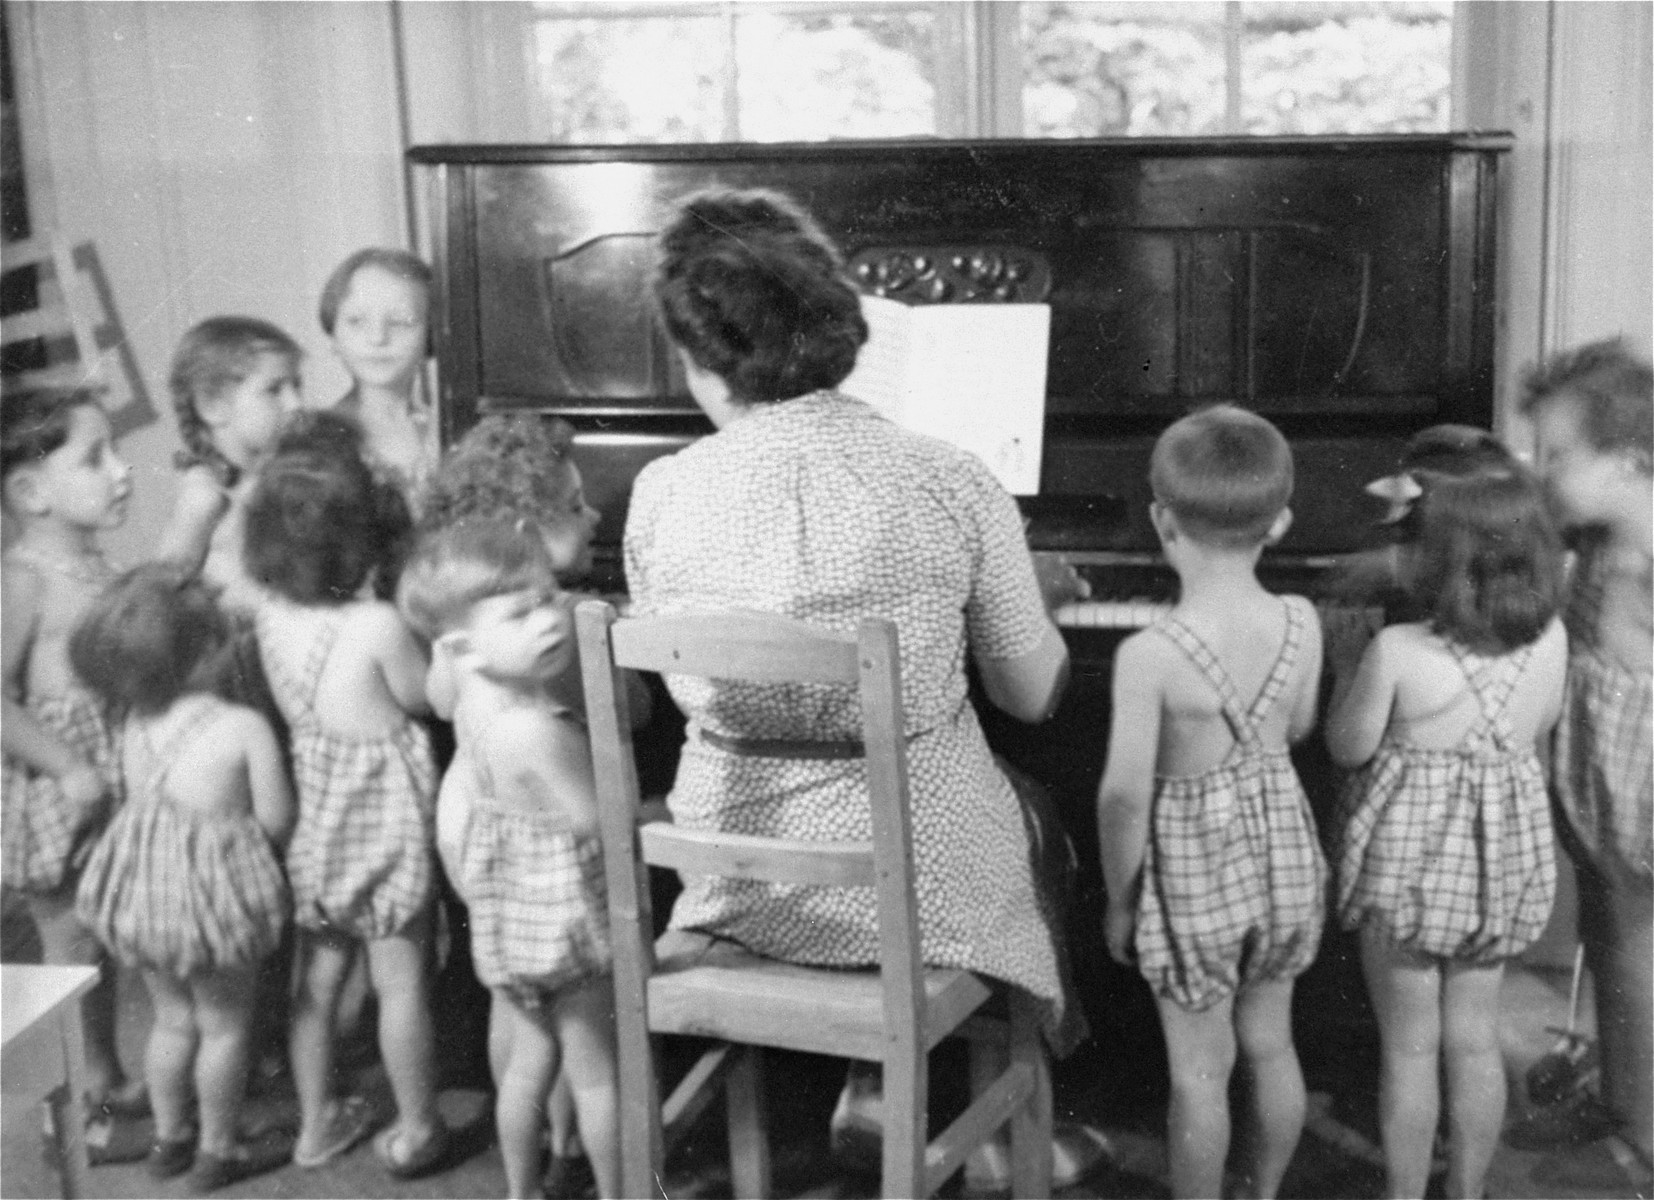 Simone Weil plays the piano for the children at the Le Petit Monde home near Paris.